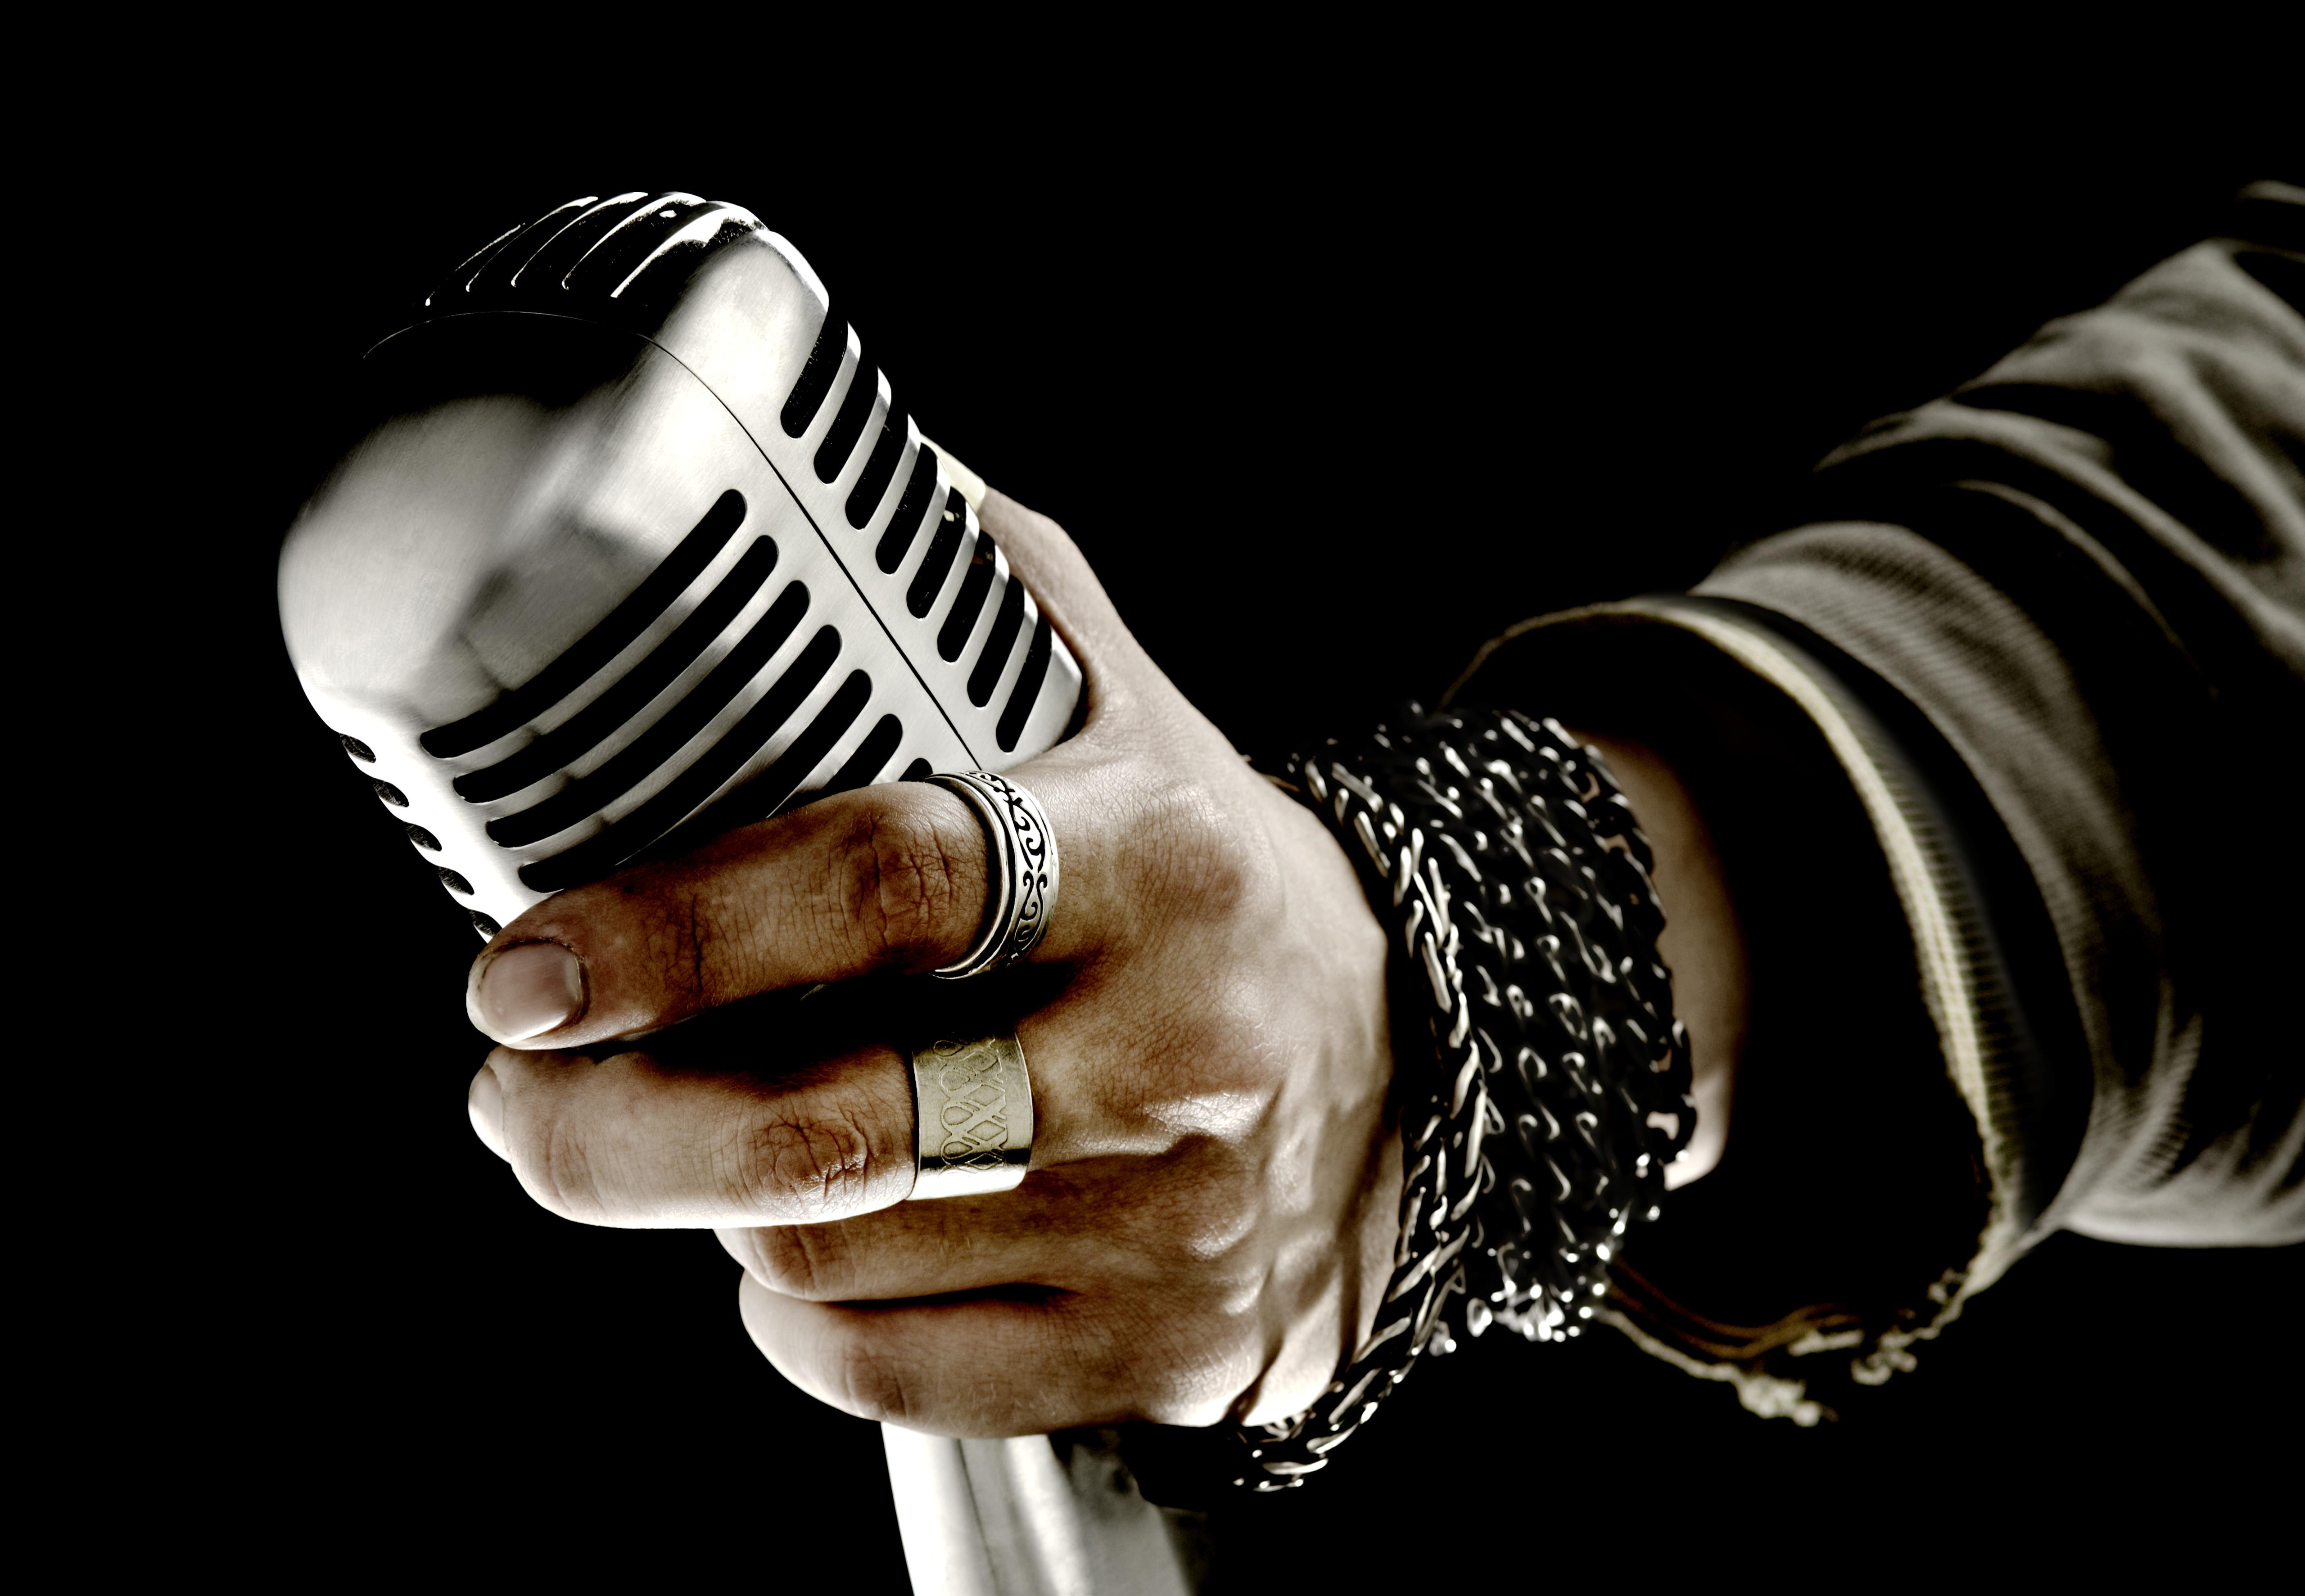 Man holding microphone, close-up